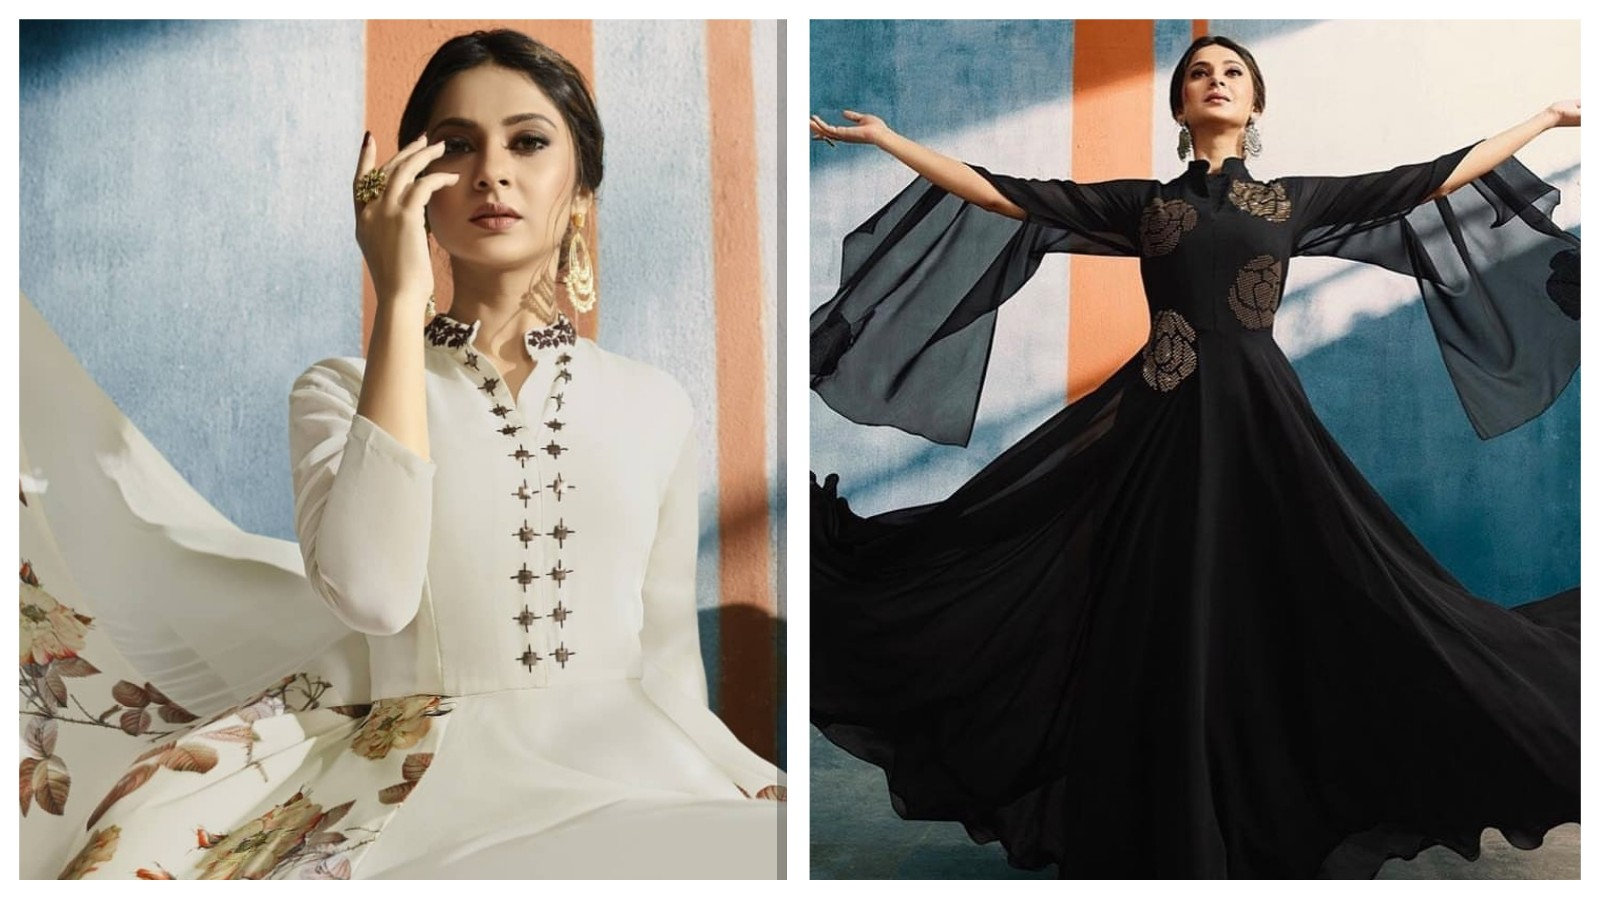 Adah newbie sharma style quotient fashion forecasting to wear in spring in 2019